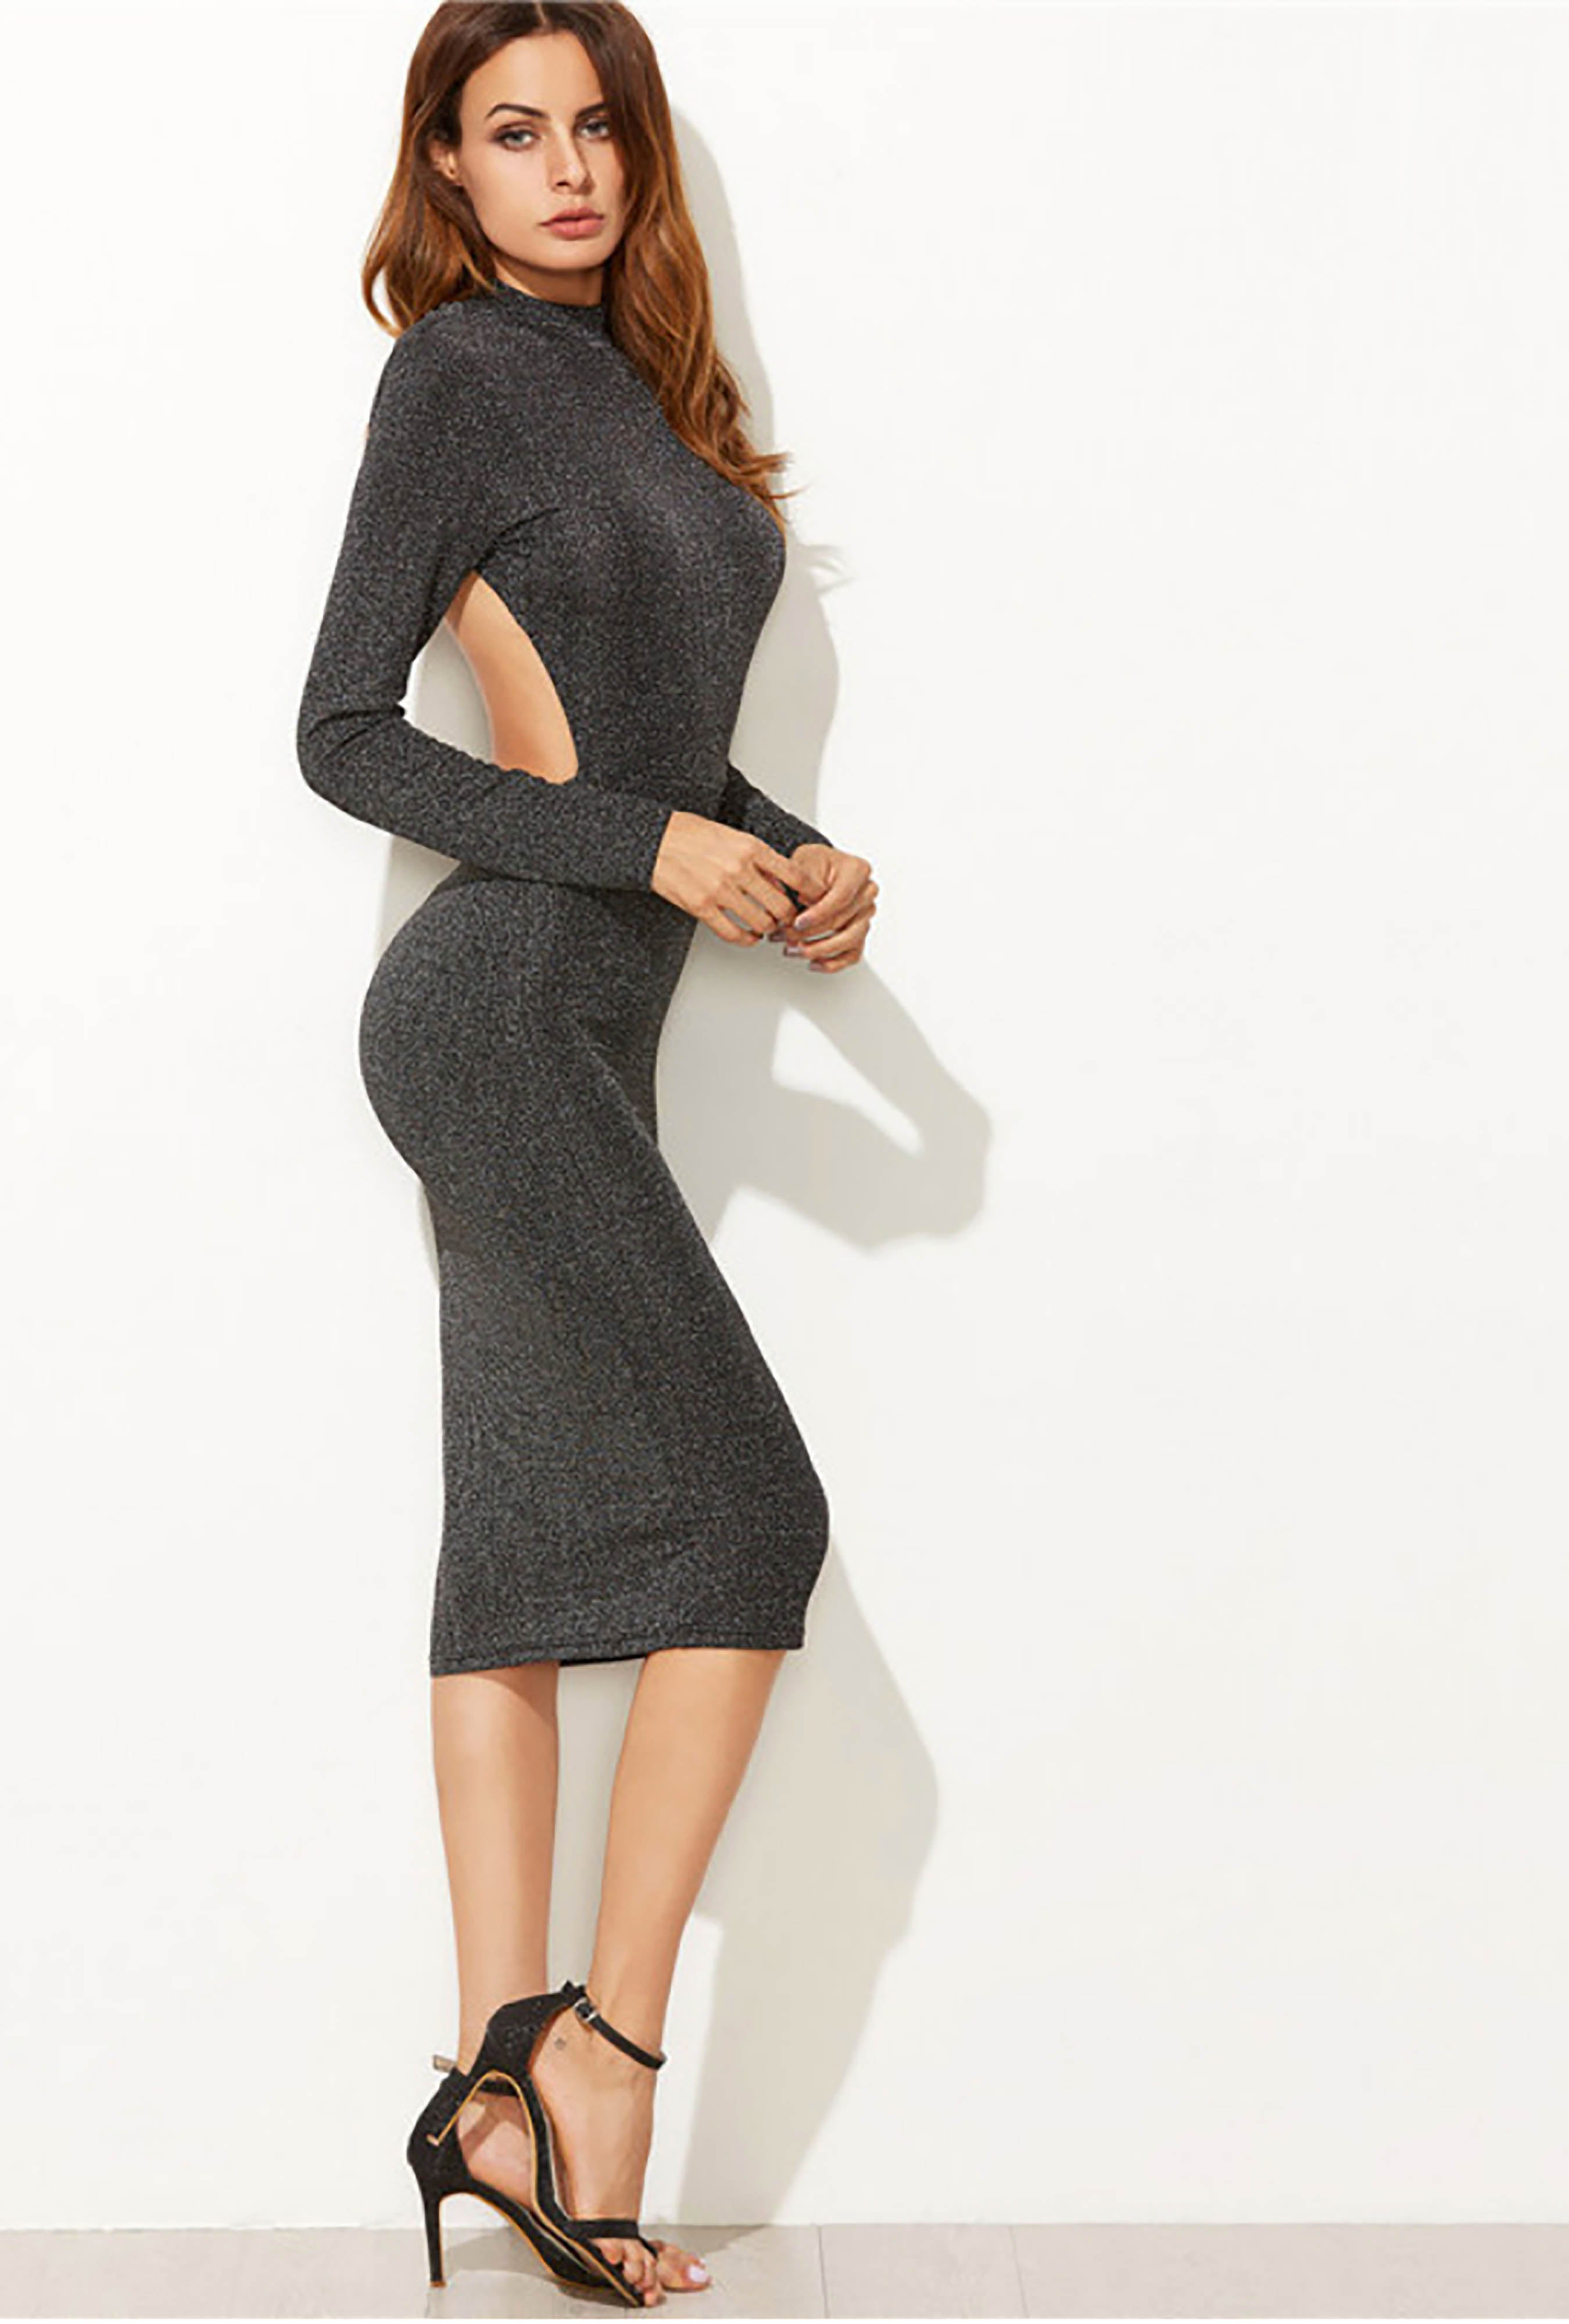 2679abff43d Charcoal Sparkle Ribbed Knit Open Back Midi Dress - EIGHTH YEAR